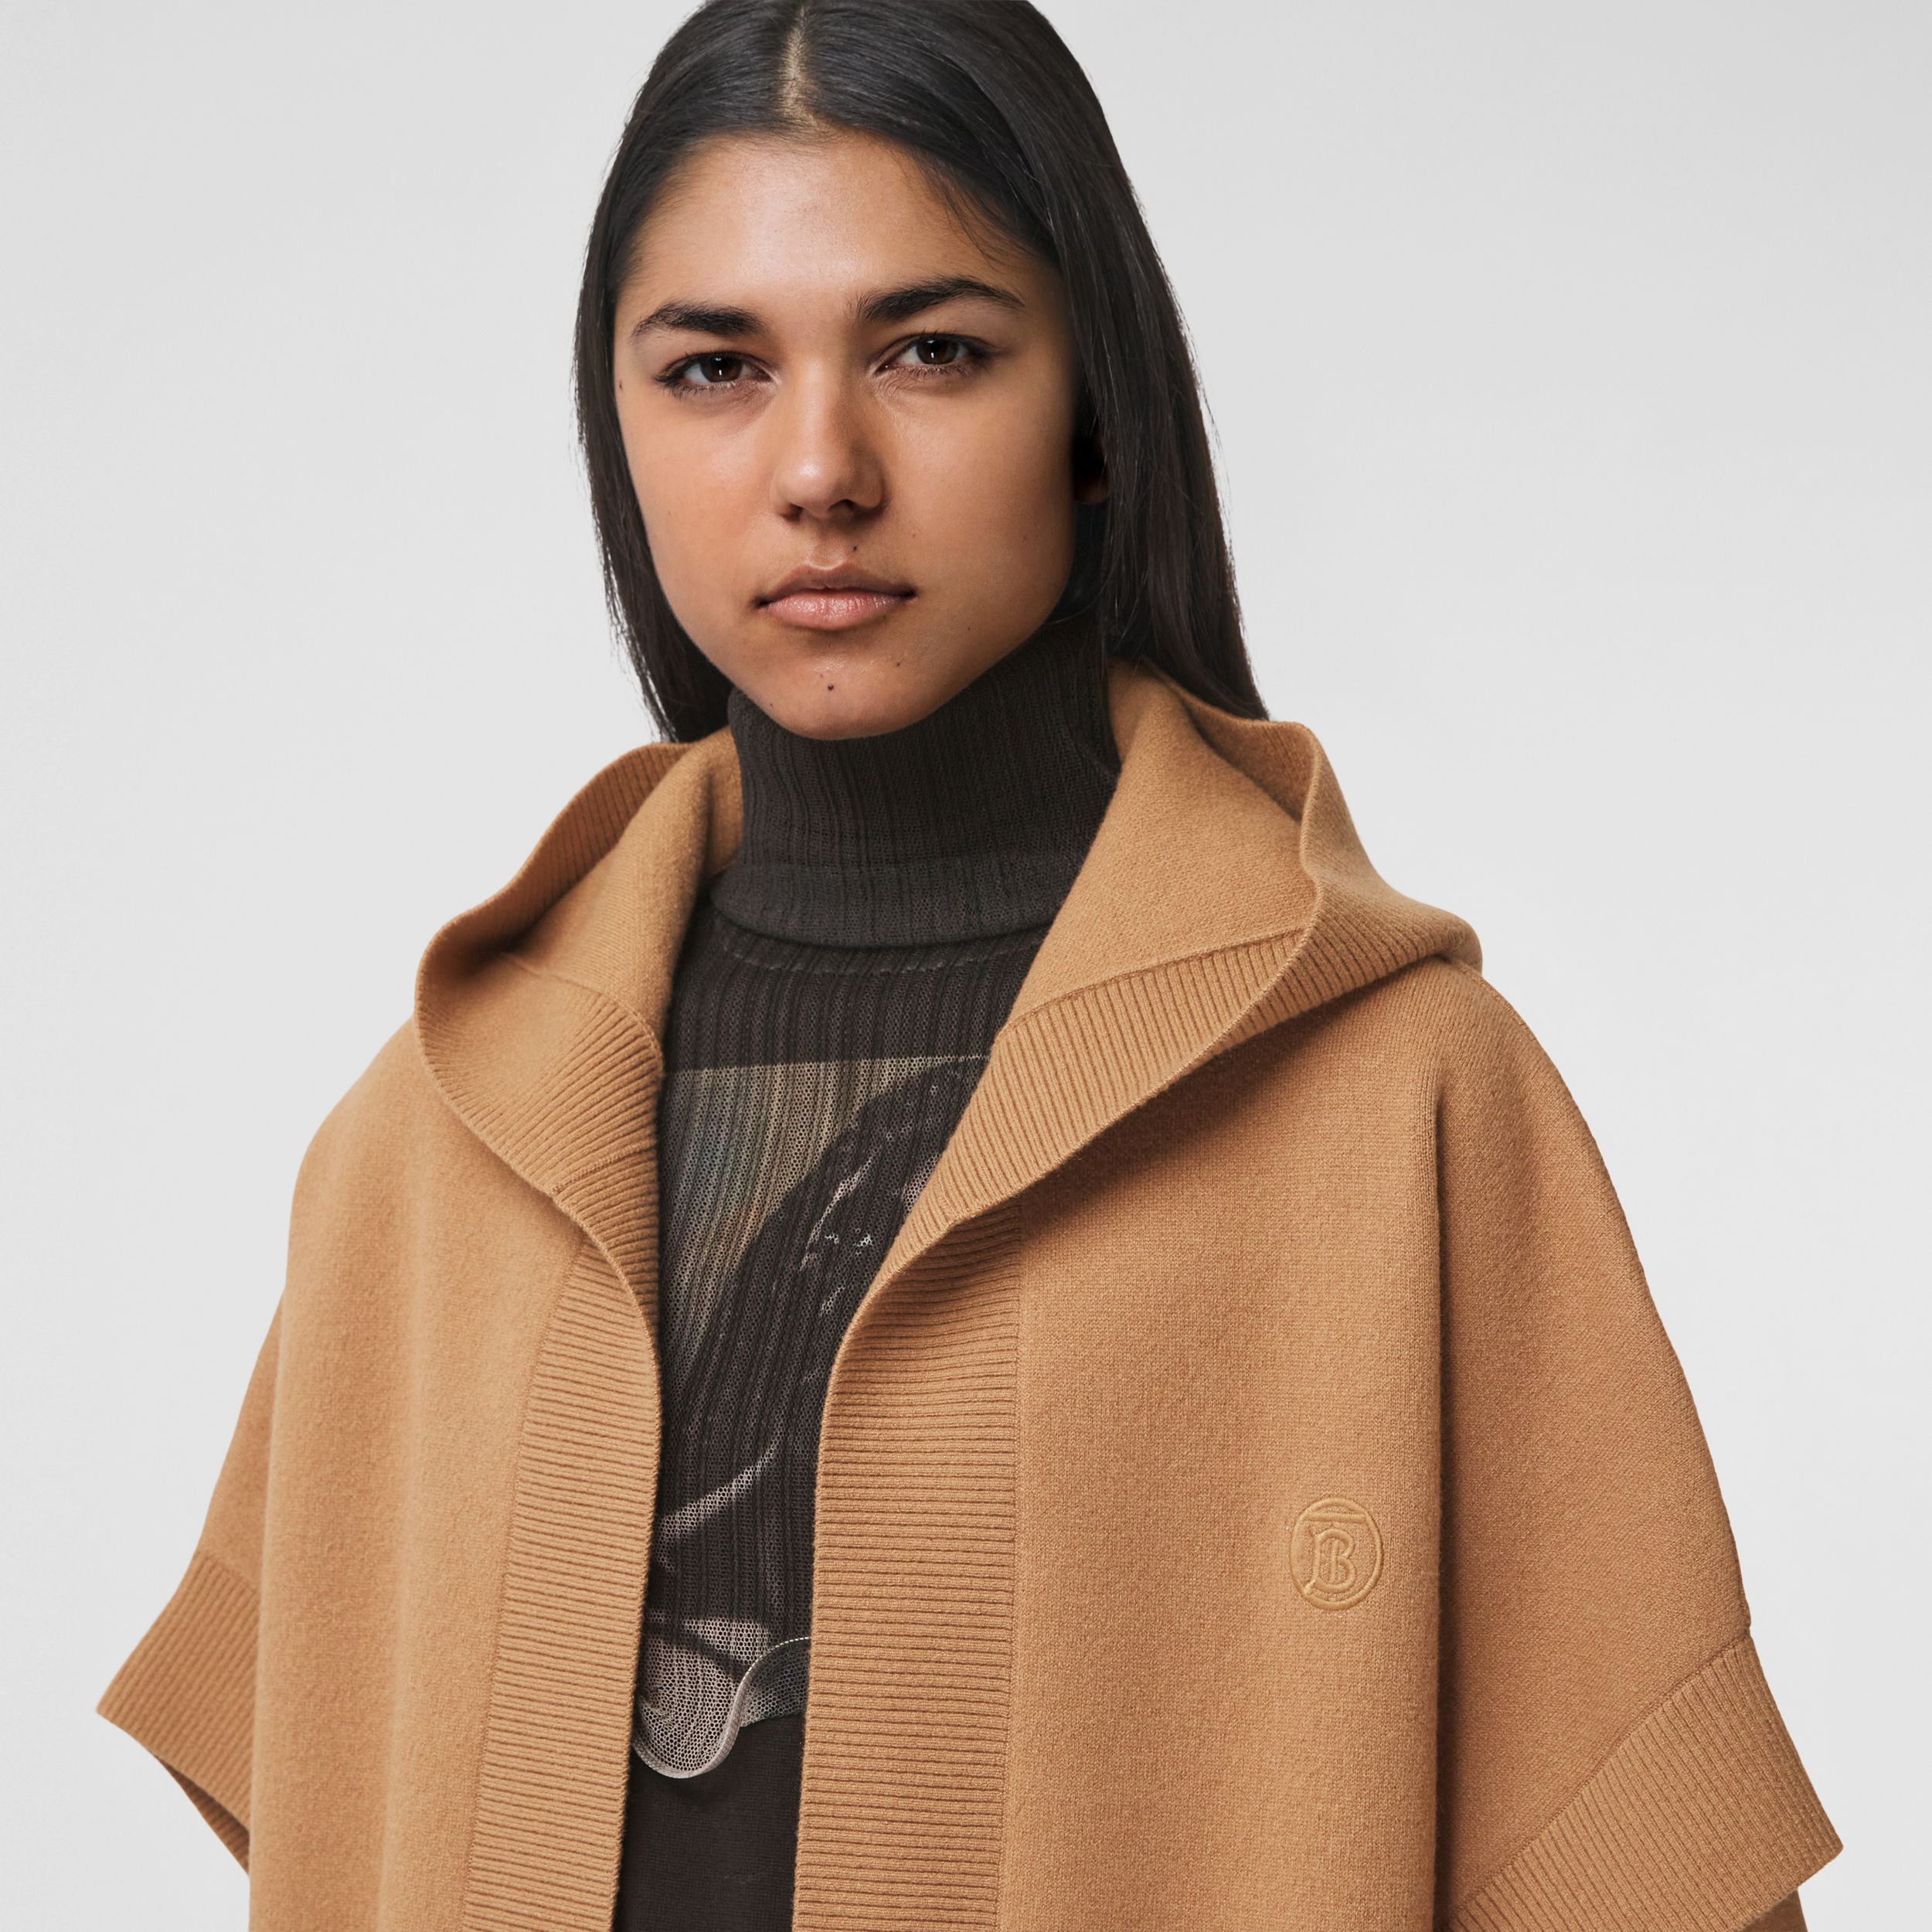 Monogram Motif Cashmere Blend Hooded Cape in Camel - Women | Burberry - 2